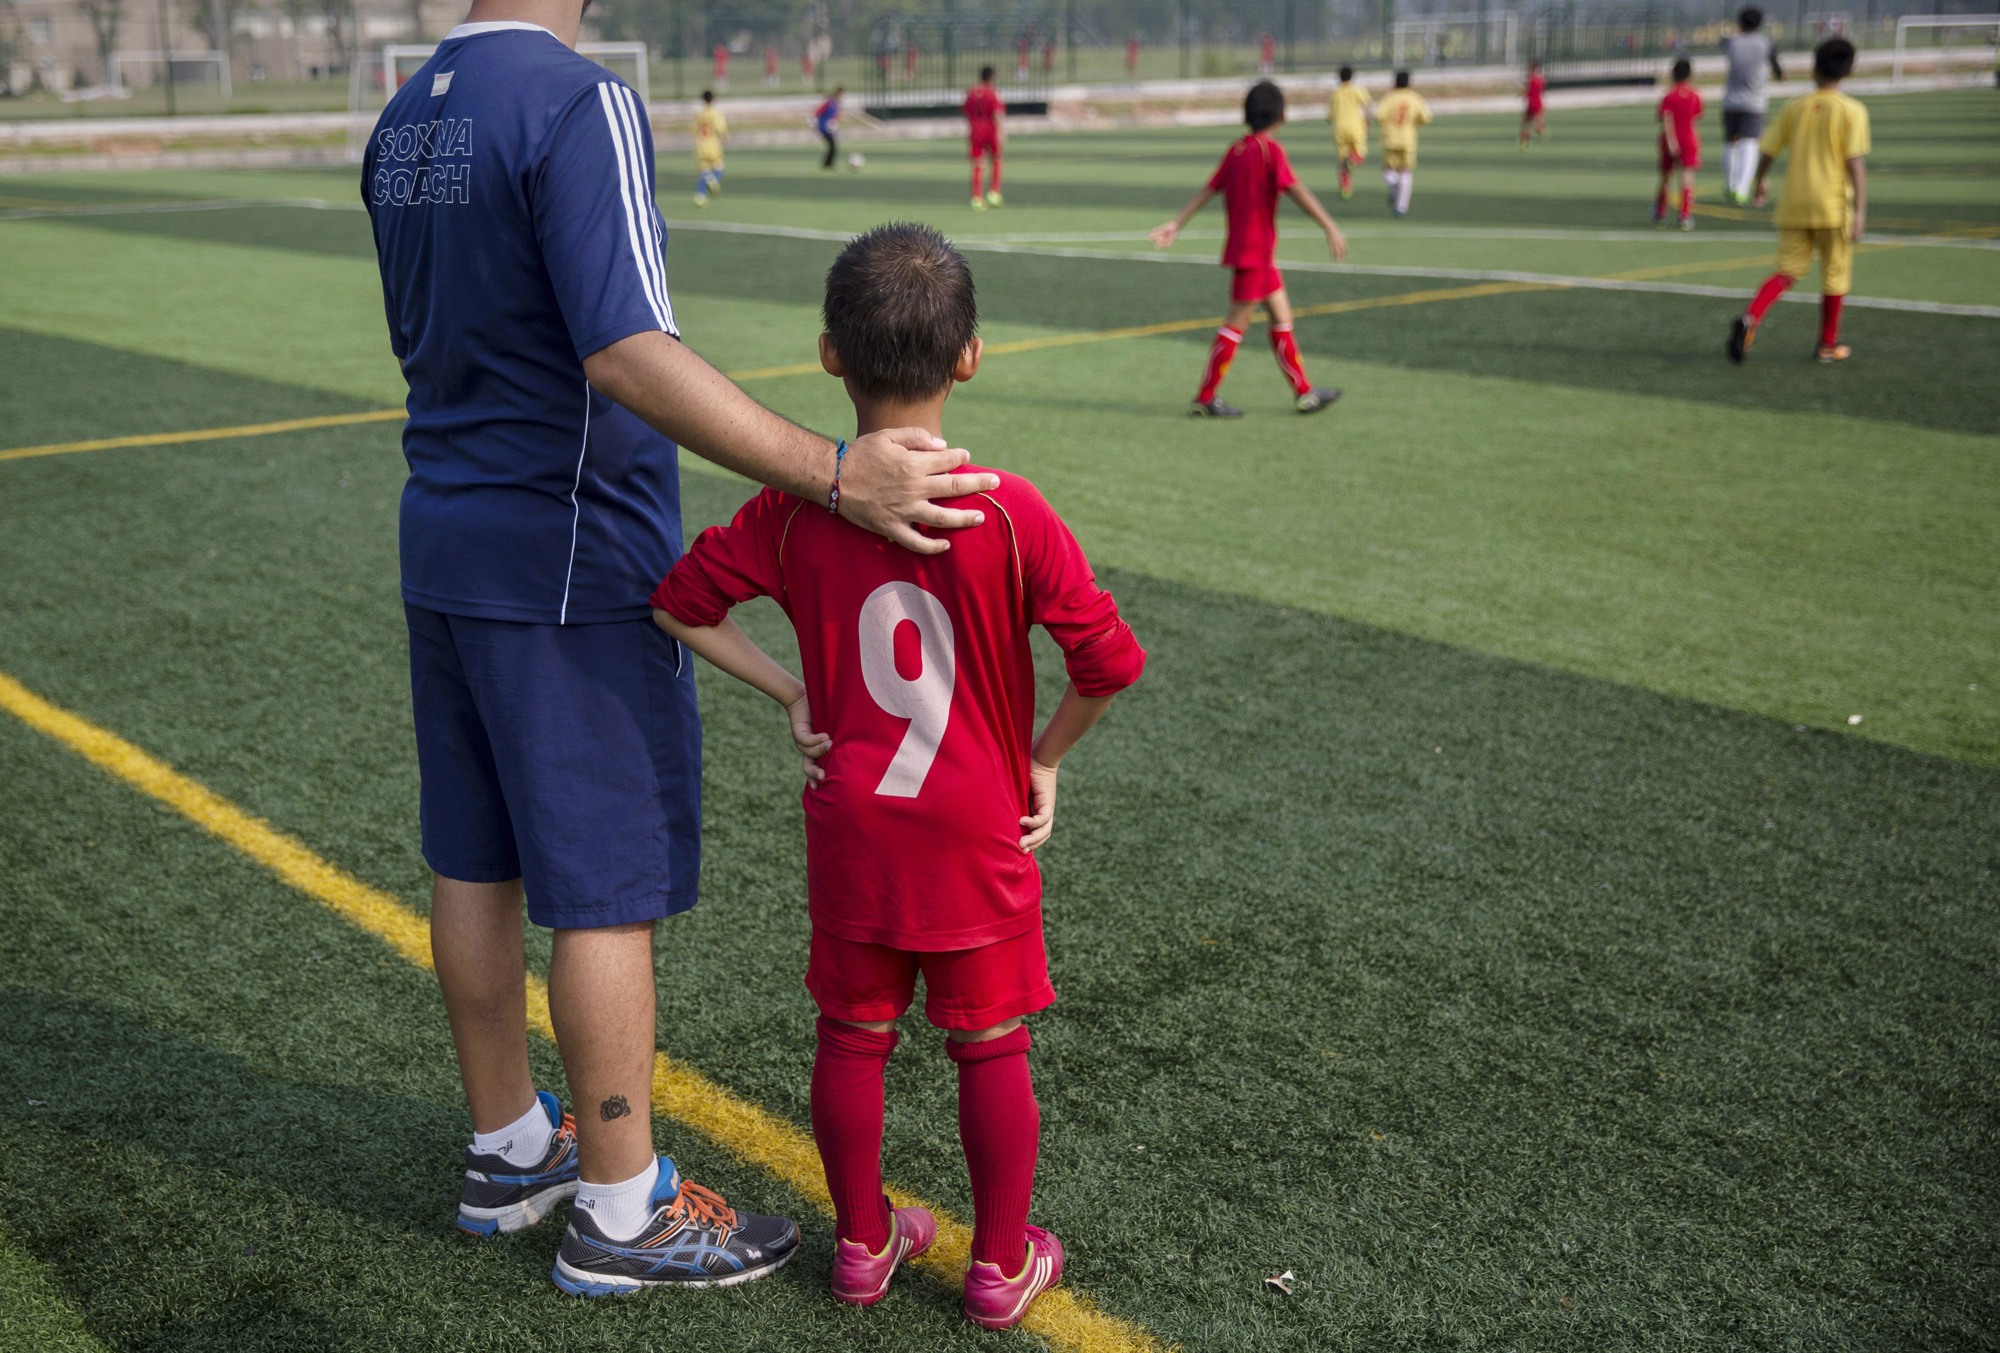 A coach from Real Madrid stands with a student during a training match.